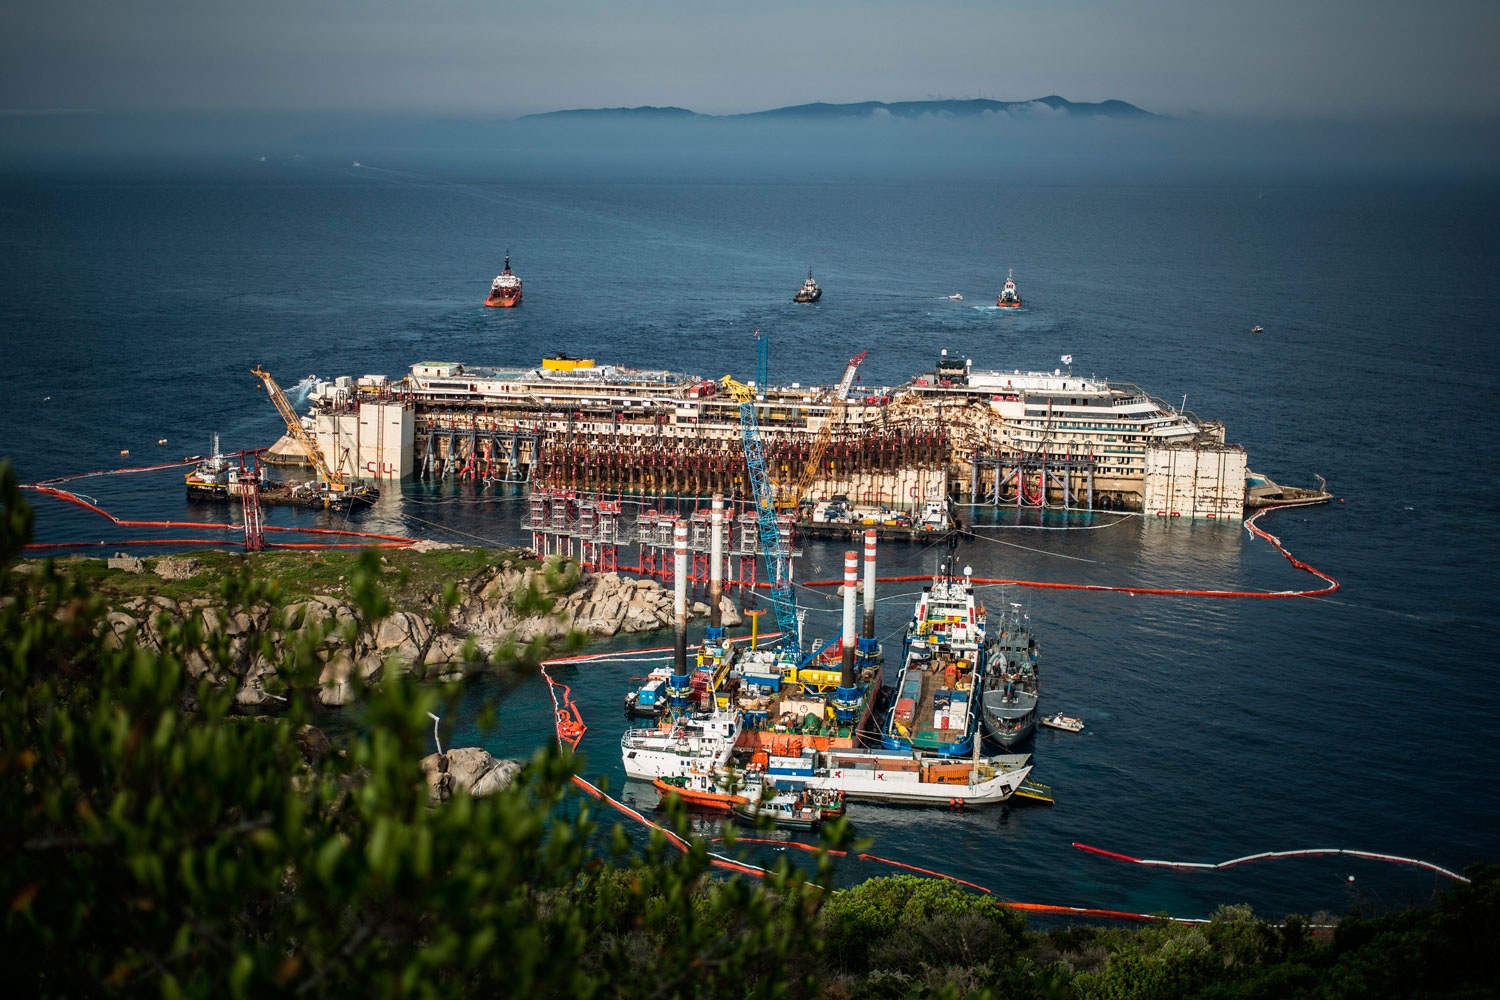 The Costa Concordia wreck re-float operation on July 21, 2014 in Giglio Porto, Italy. The 114,500 ton ship ran aground in January of 2012. The ships captain could face 20 years in prison.